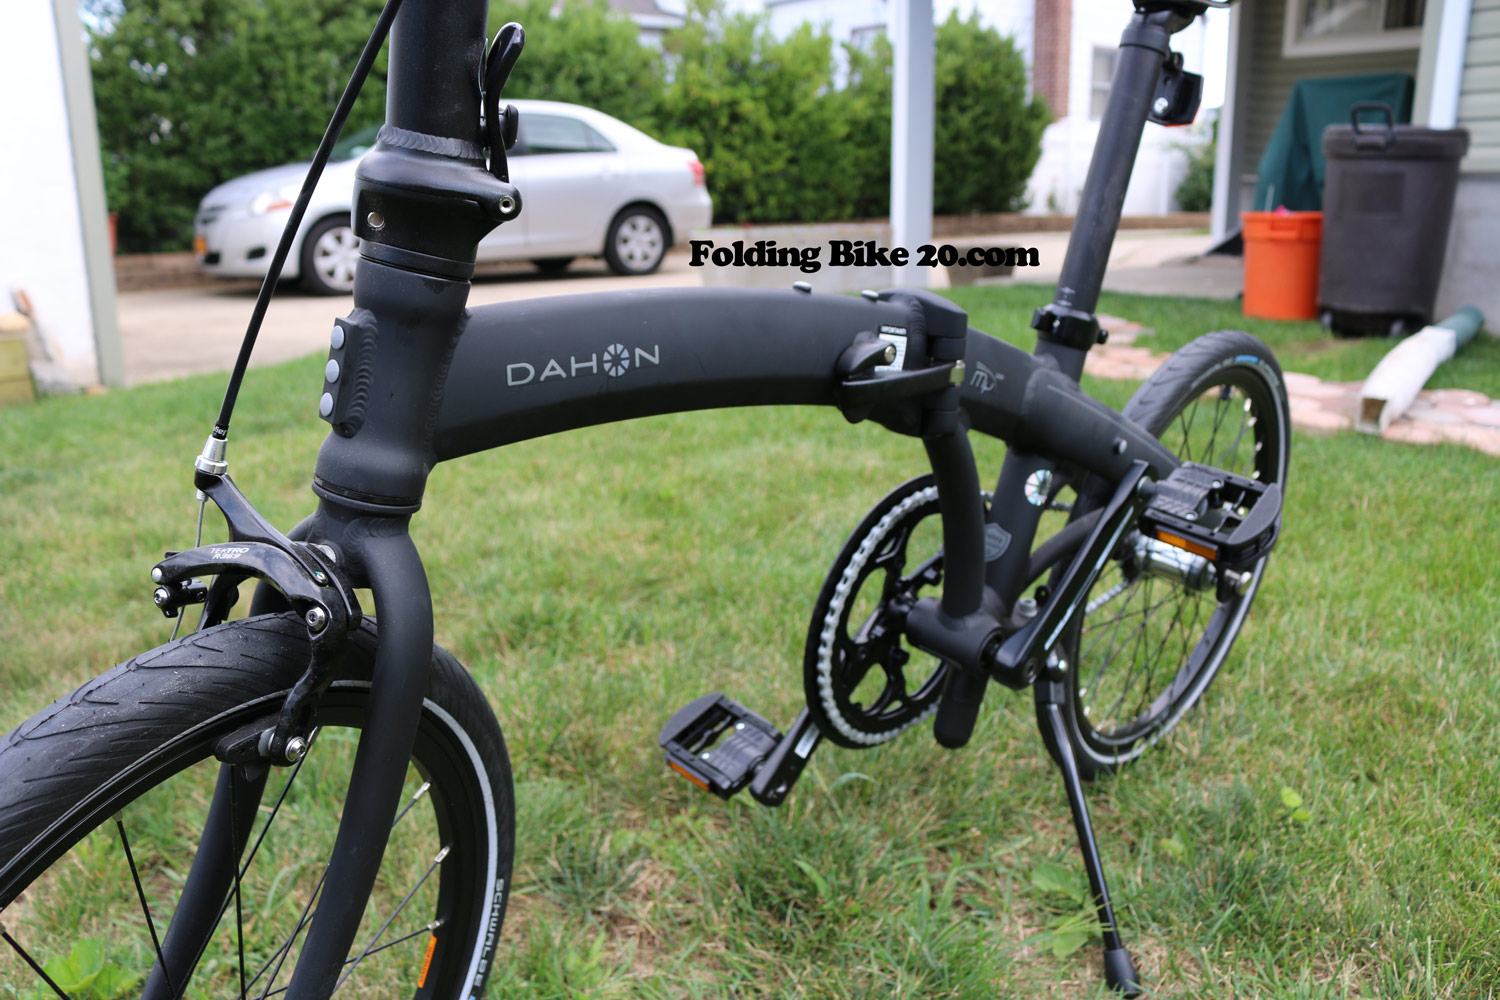 dahon mu uno folding bike review how simplicity makes the difference. Black Bedroom Furniture Sets. Home Design Ideas